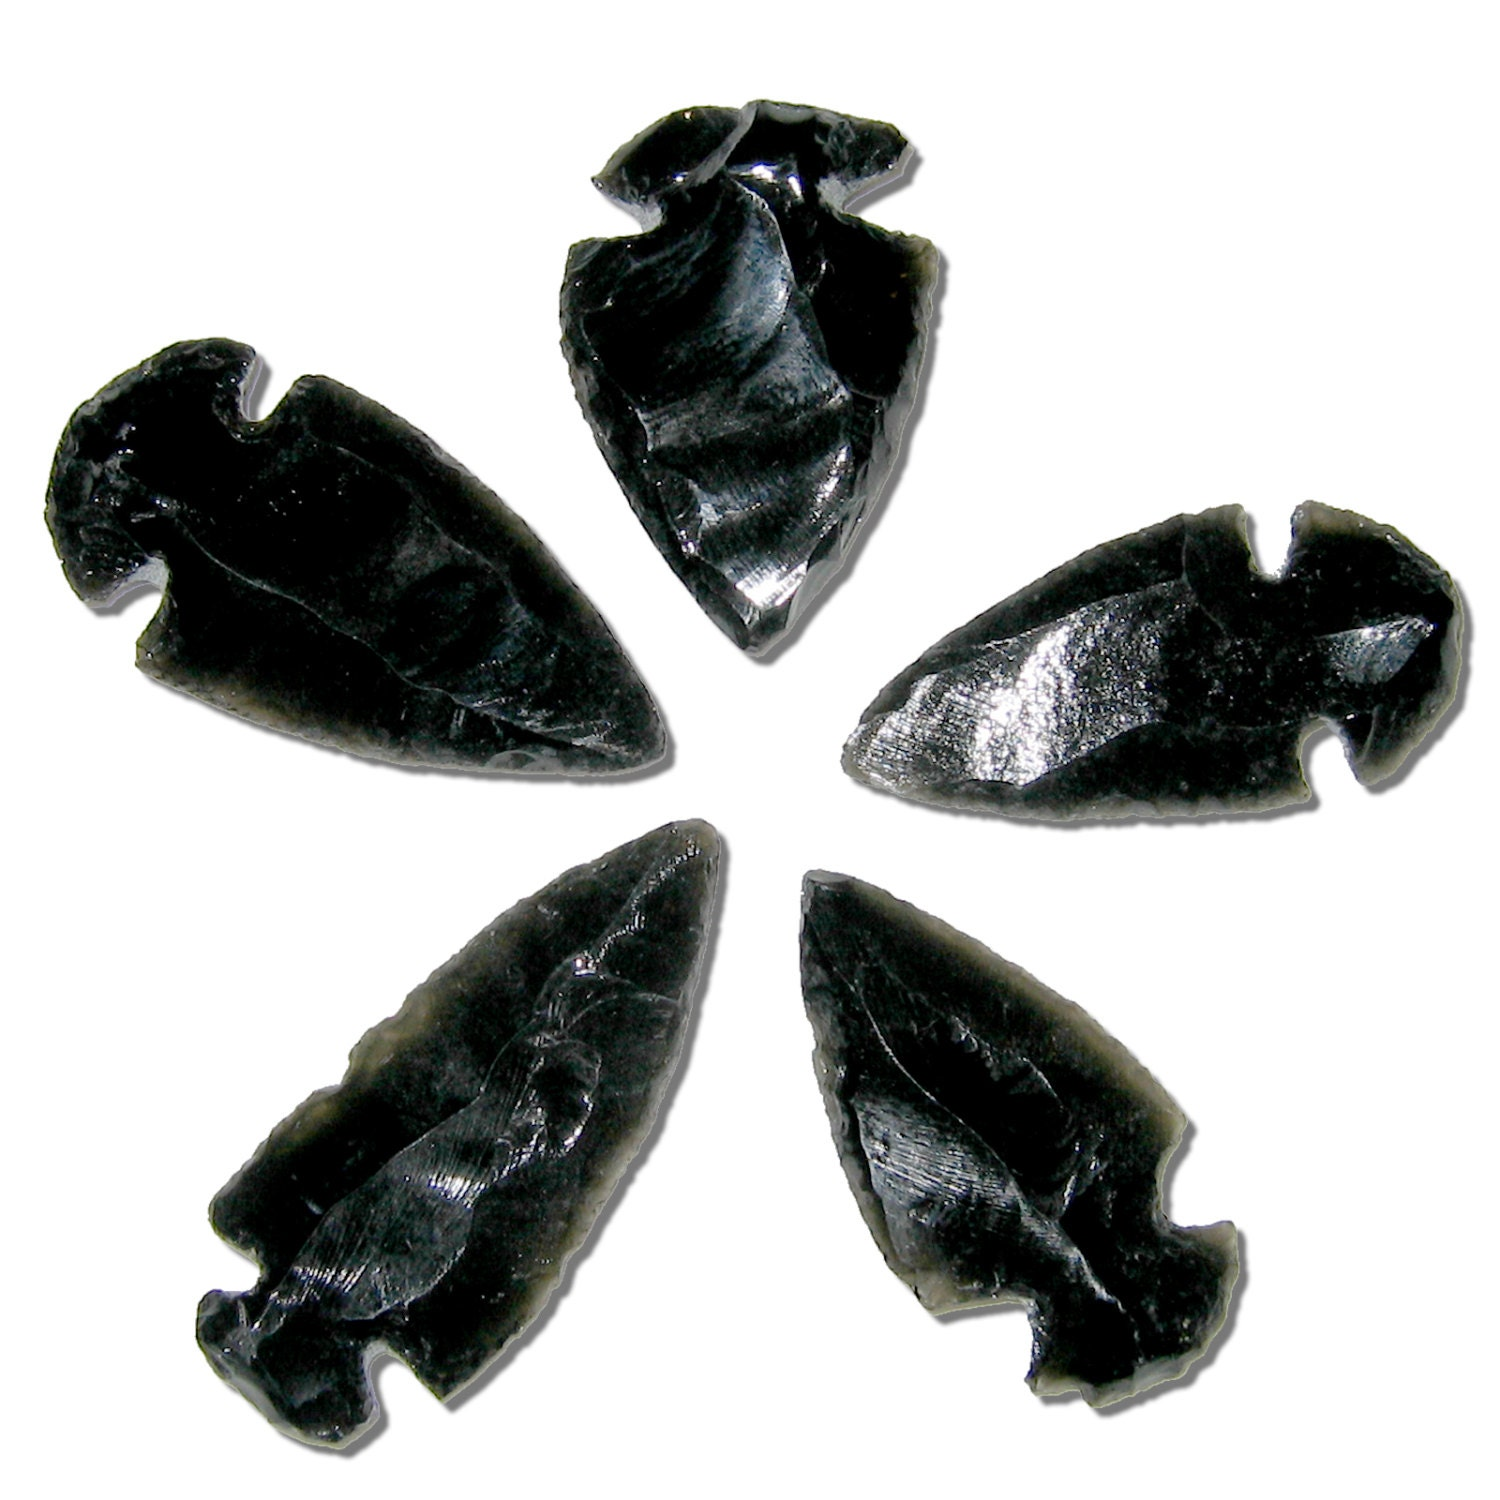 5 obsidian arrowheads hand crafted black stone arrow heads